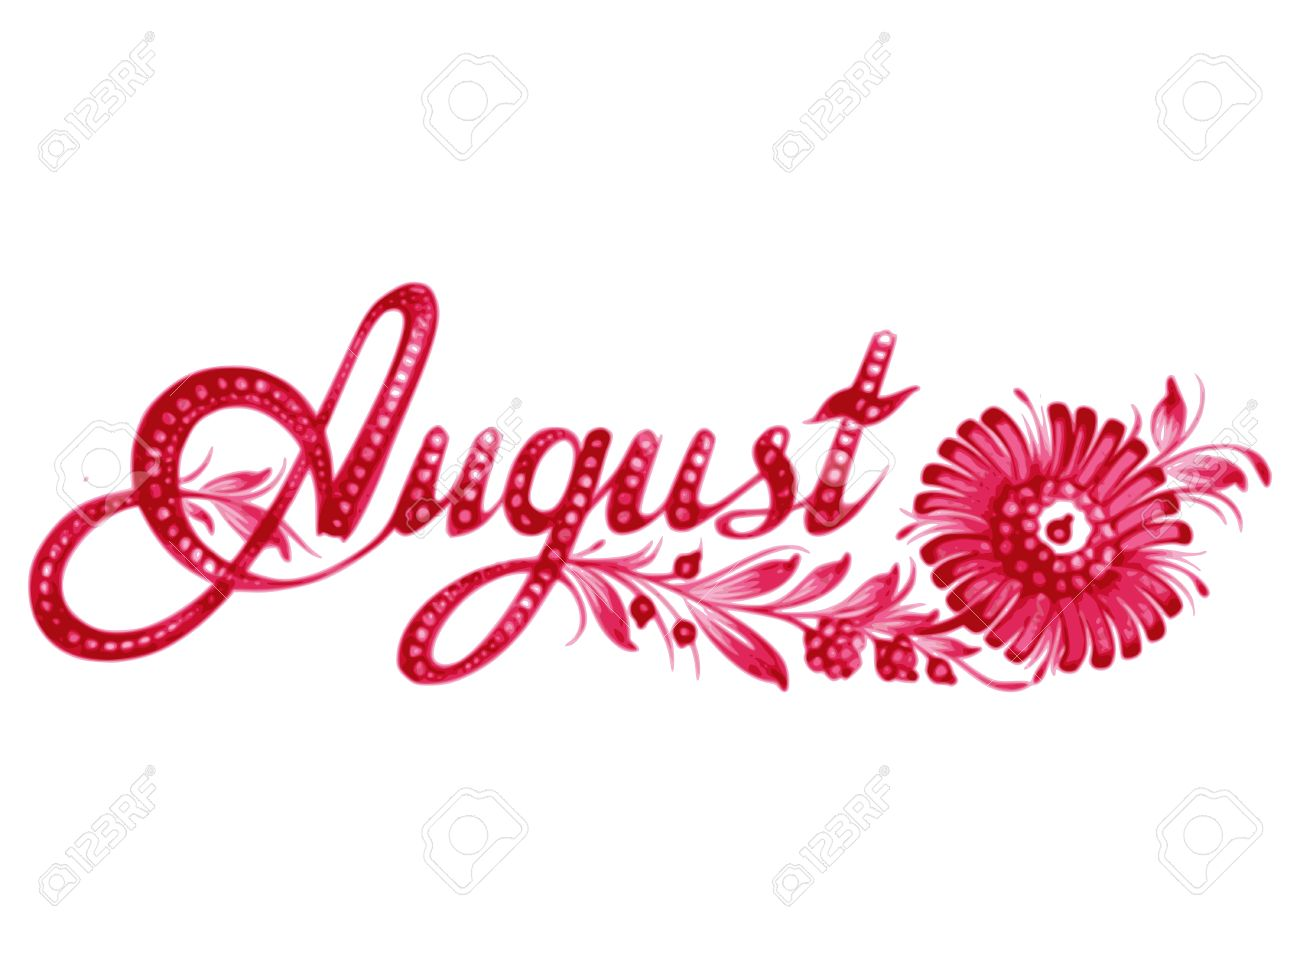 The month of august clipart image free August, Name Of The Month, Hand Drawn, Illustration In Ukrainian ... image free